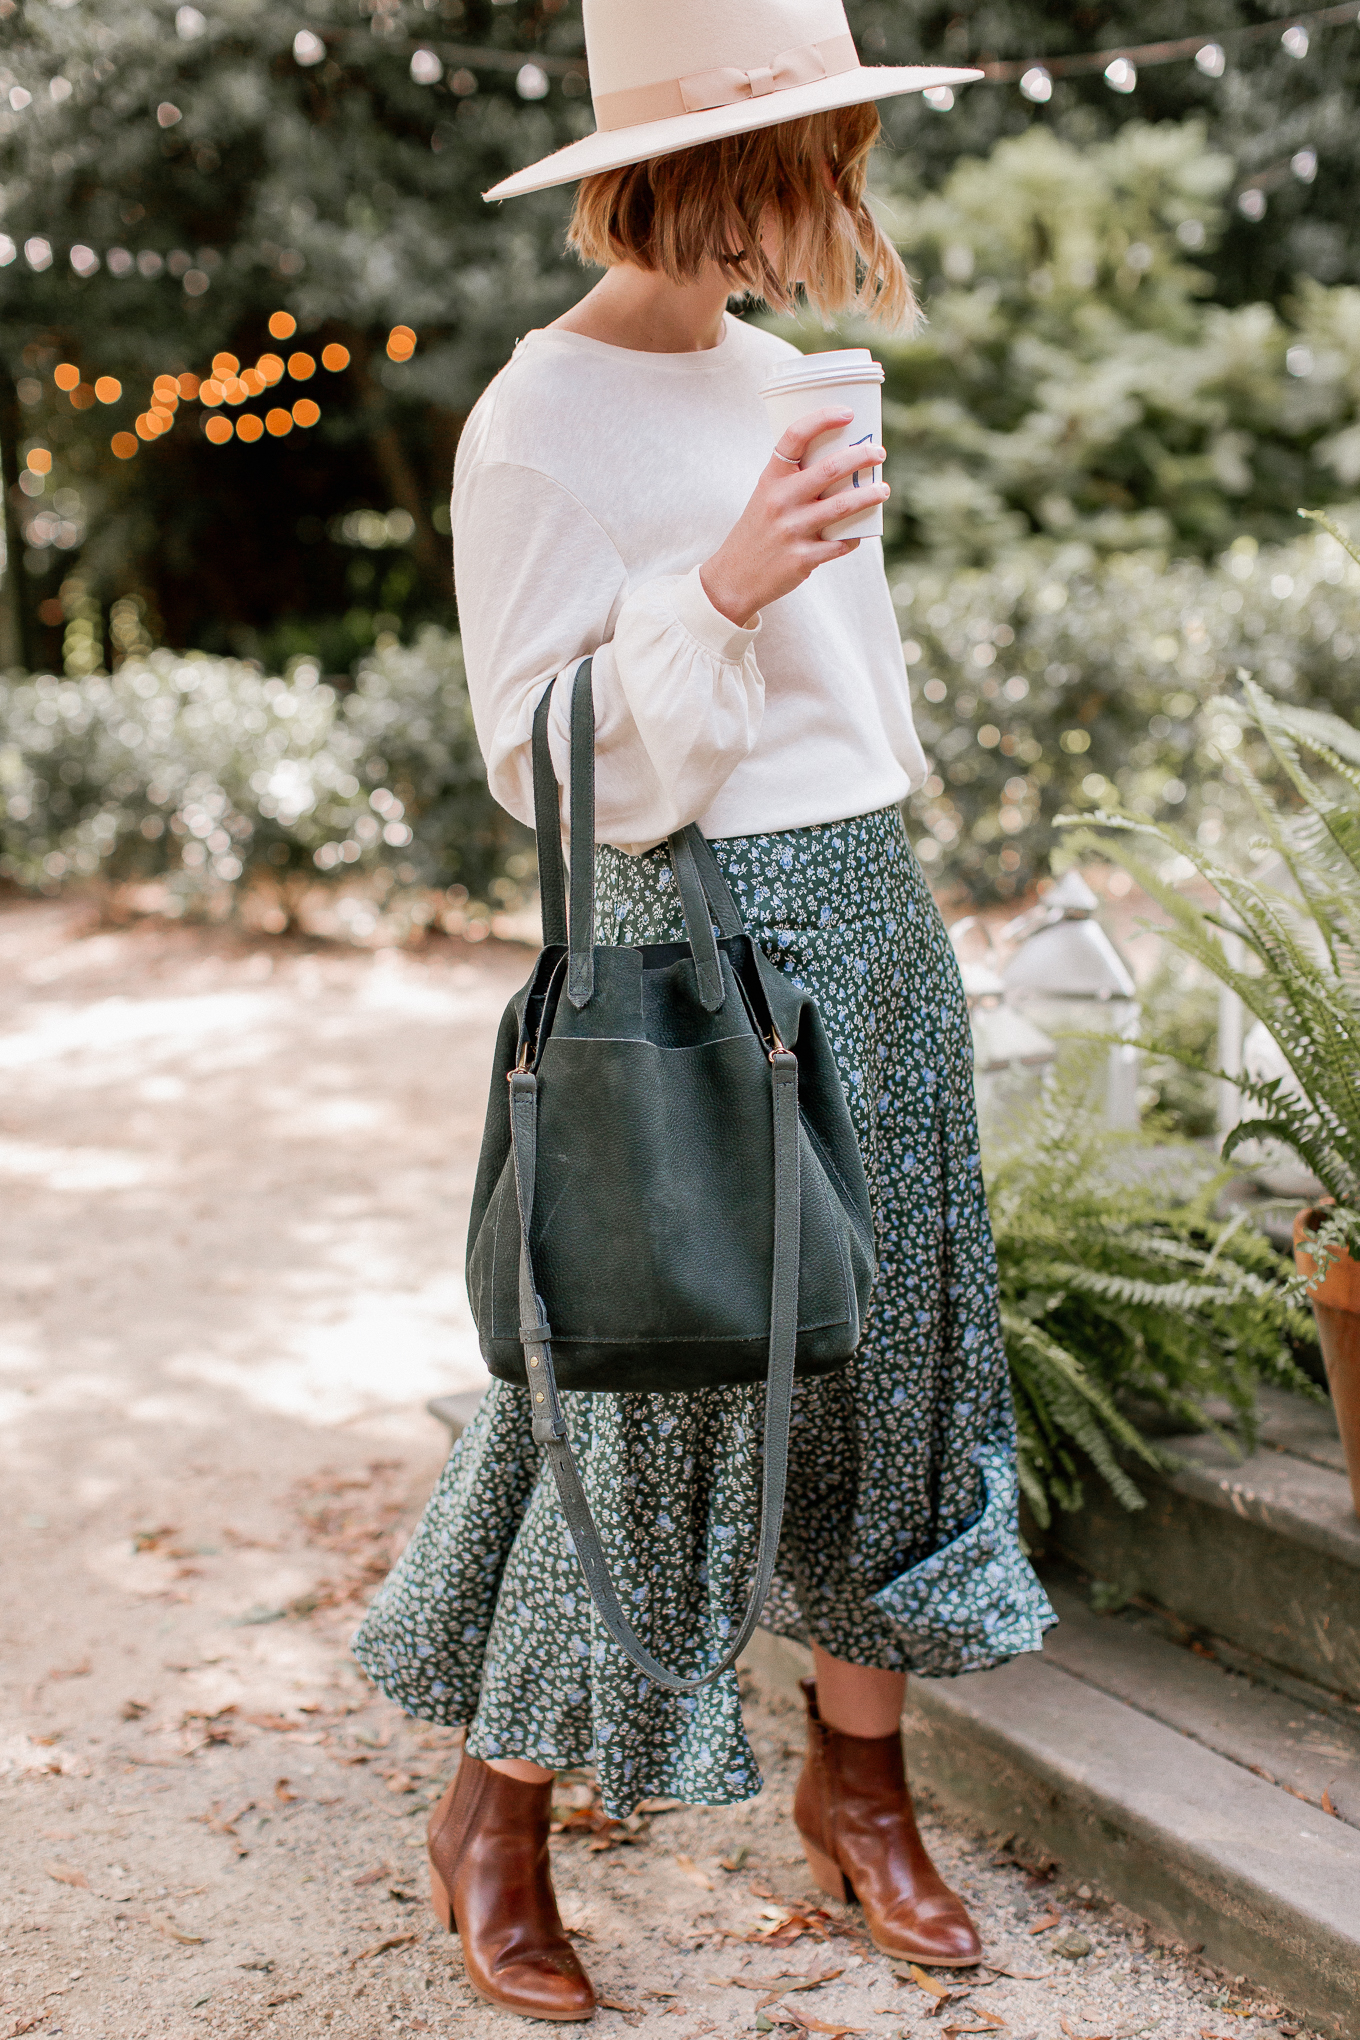 Fall Outfit Idea | Long Sleeve T-Shirt, Floral Midi Skirt, Brown Leather Booties, Green Suede Tote | Louella Reese